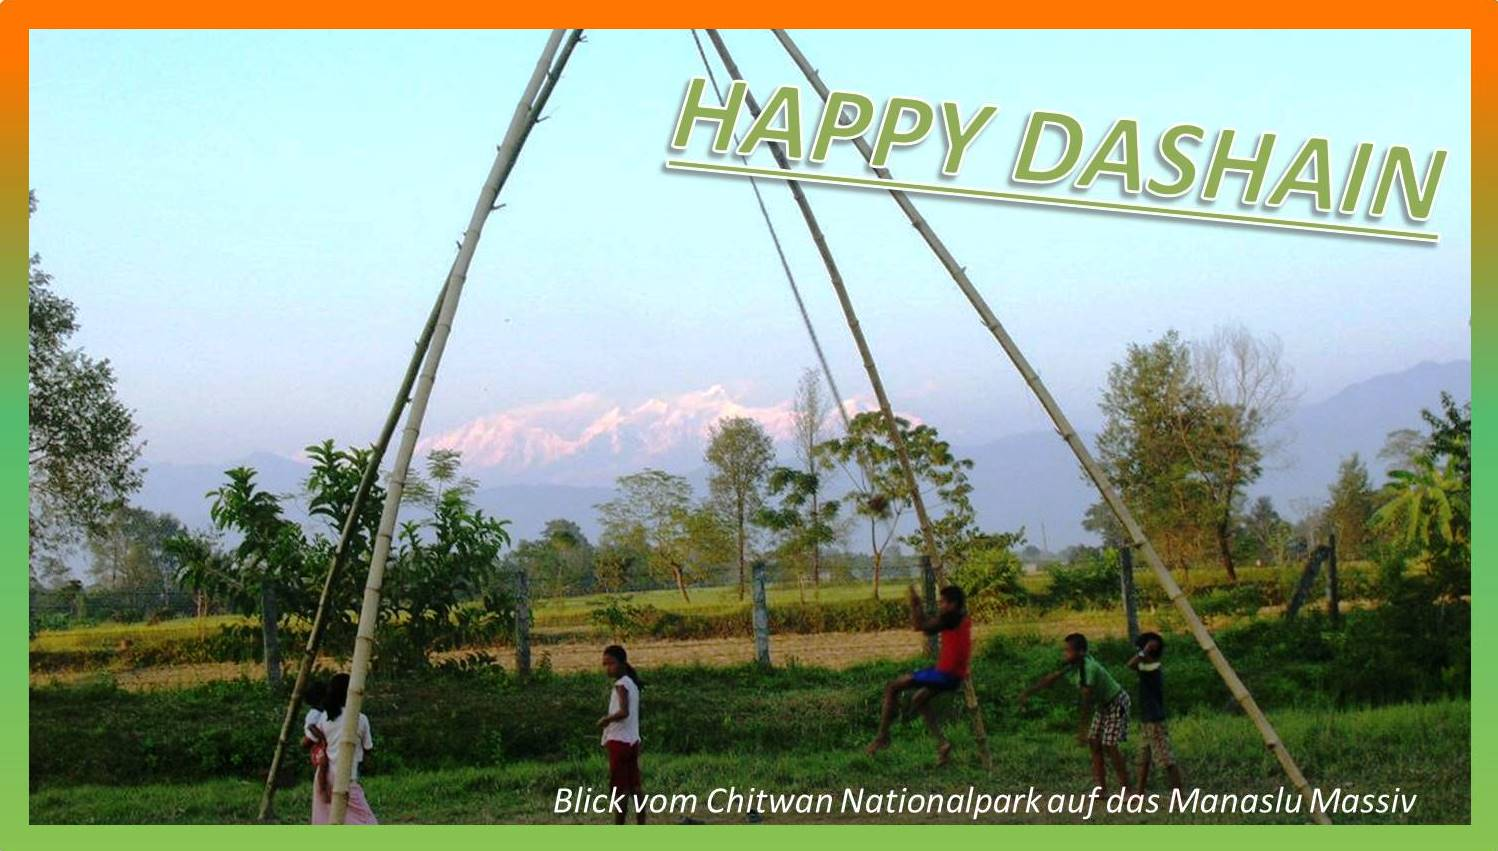 HAPPY DASHAIN FESTIVAL